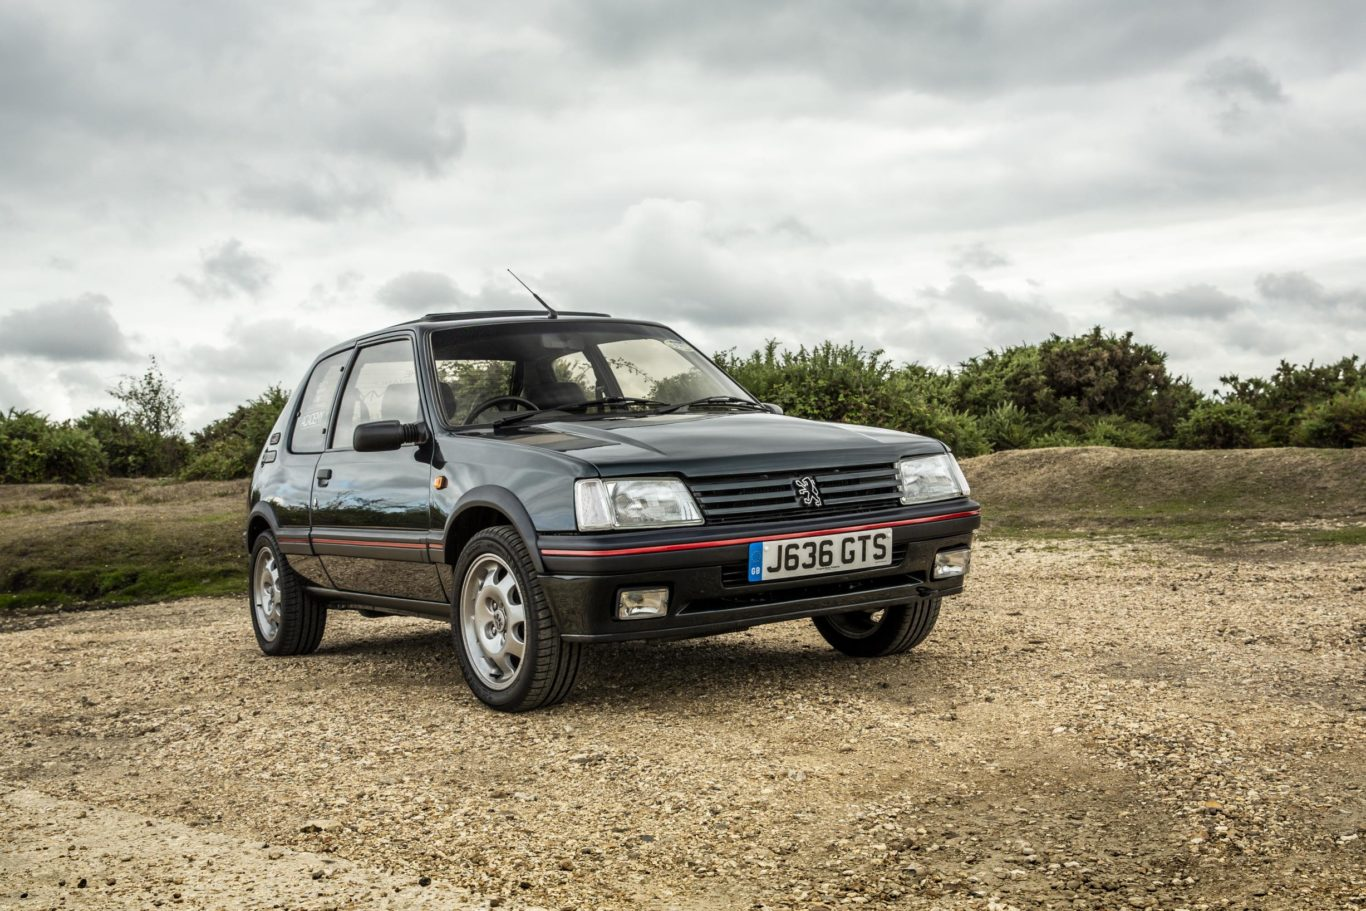 The 205 GTI has gone on to become a cult classic